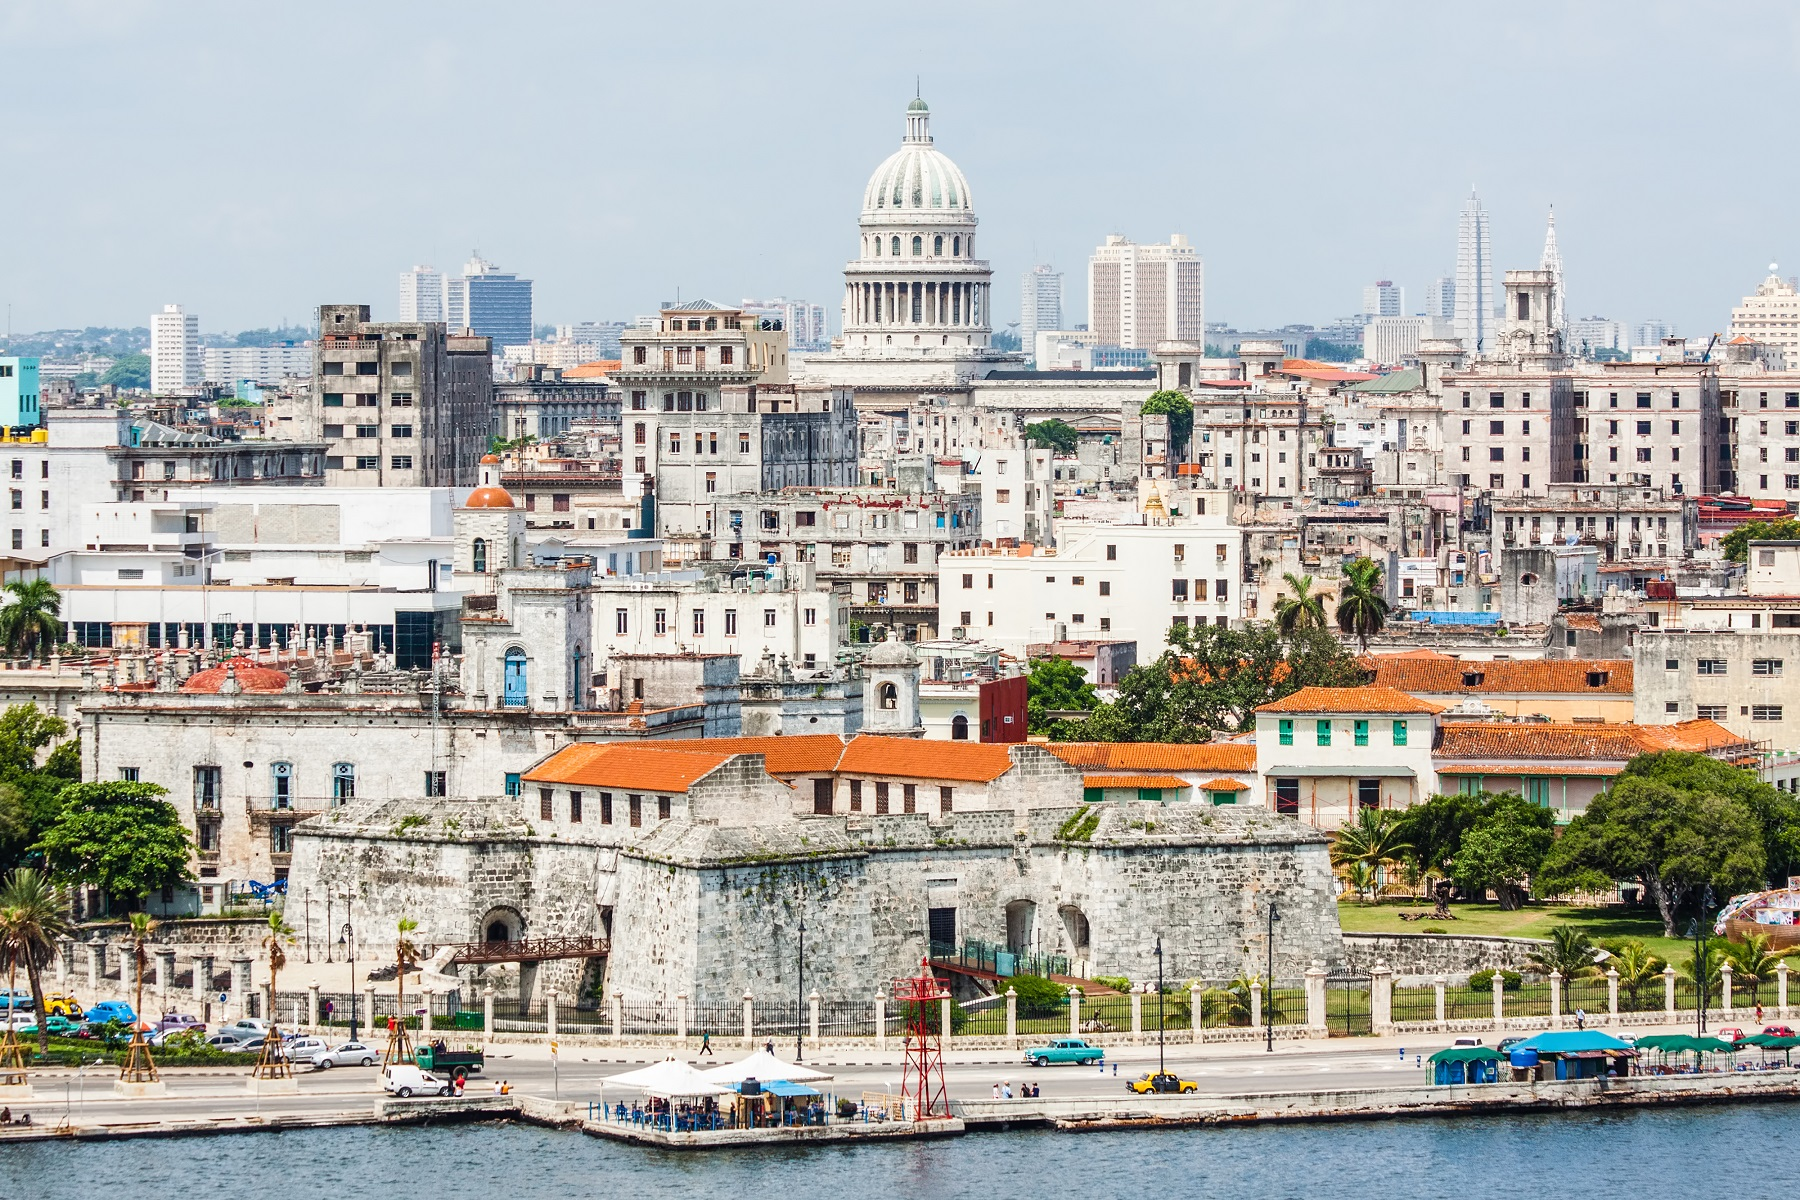 The city of Havana including the old town and several iconic buildings